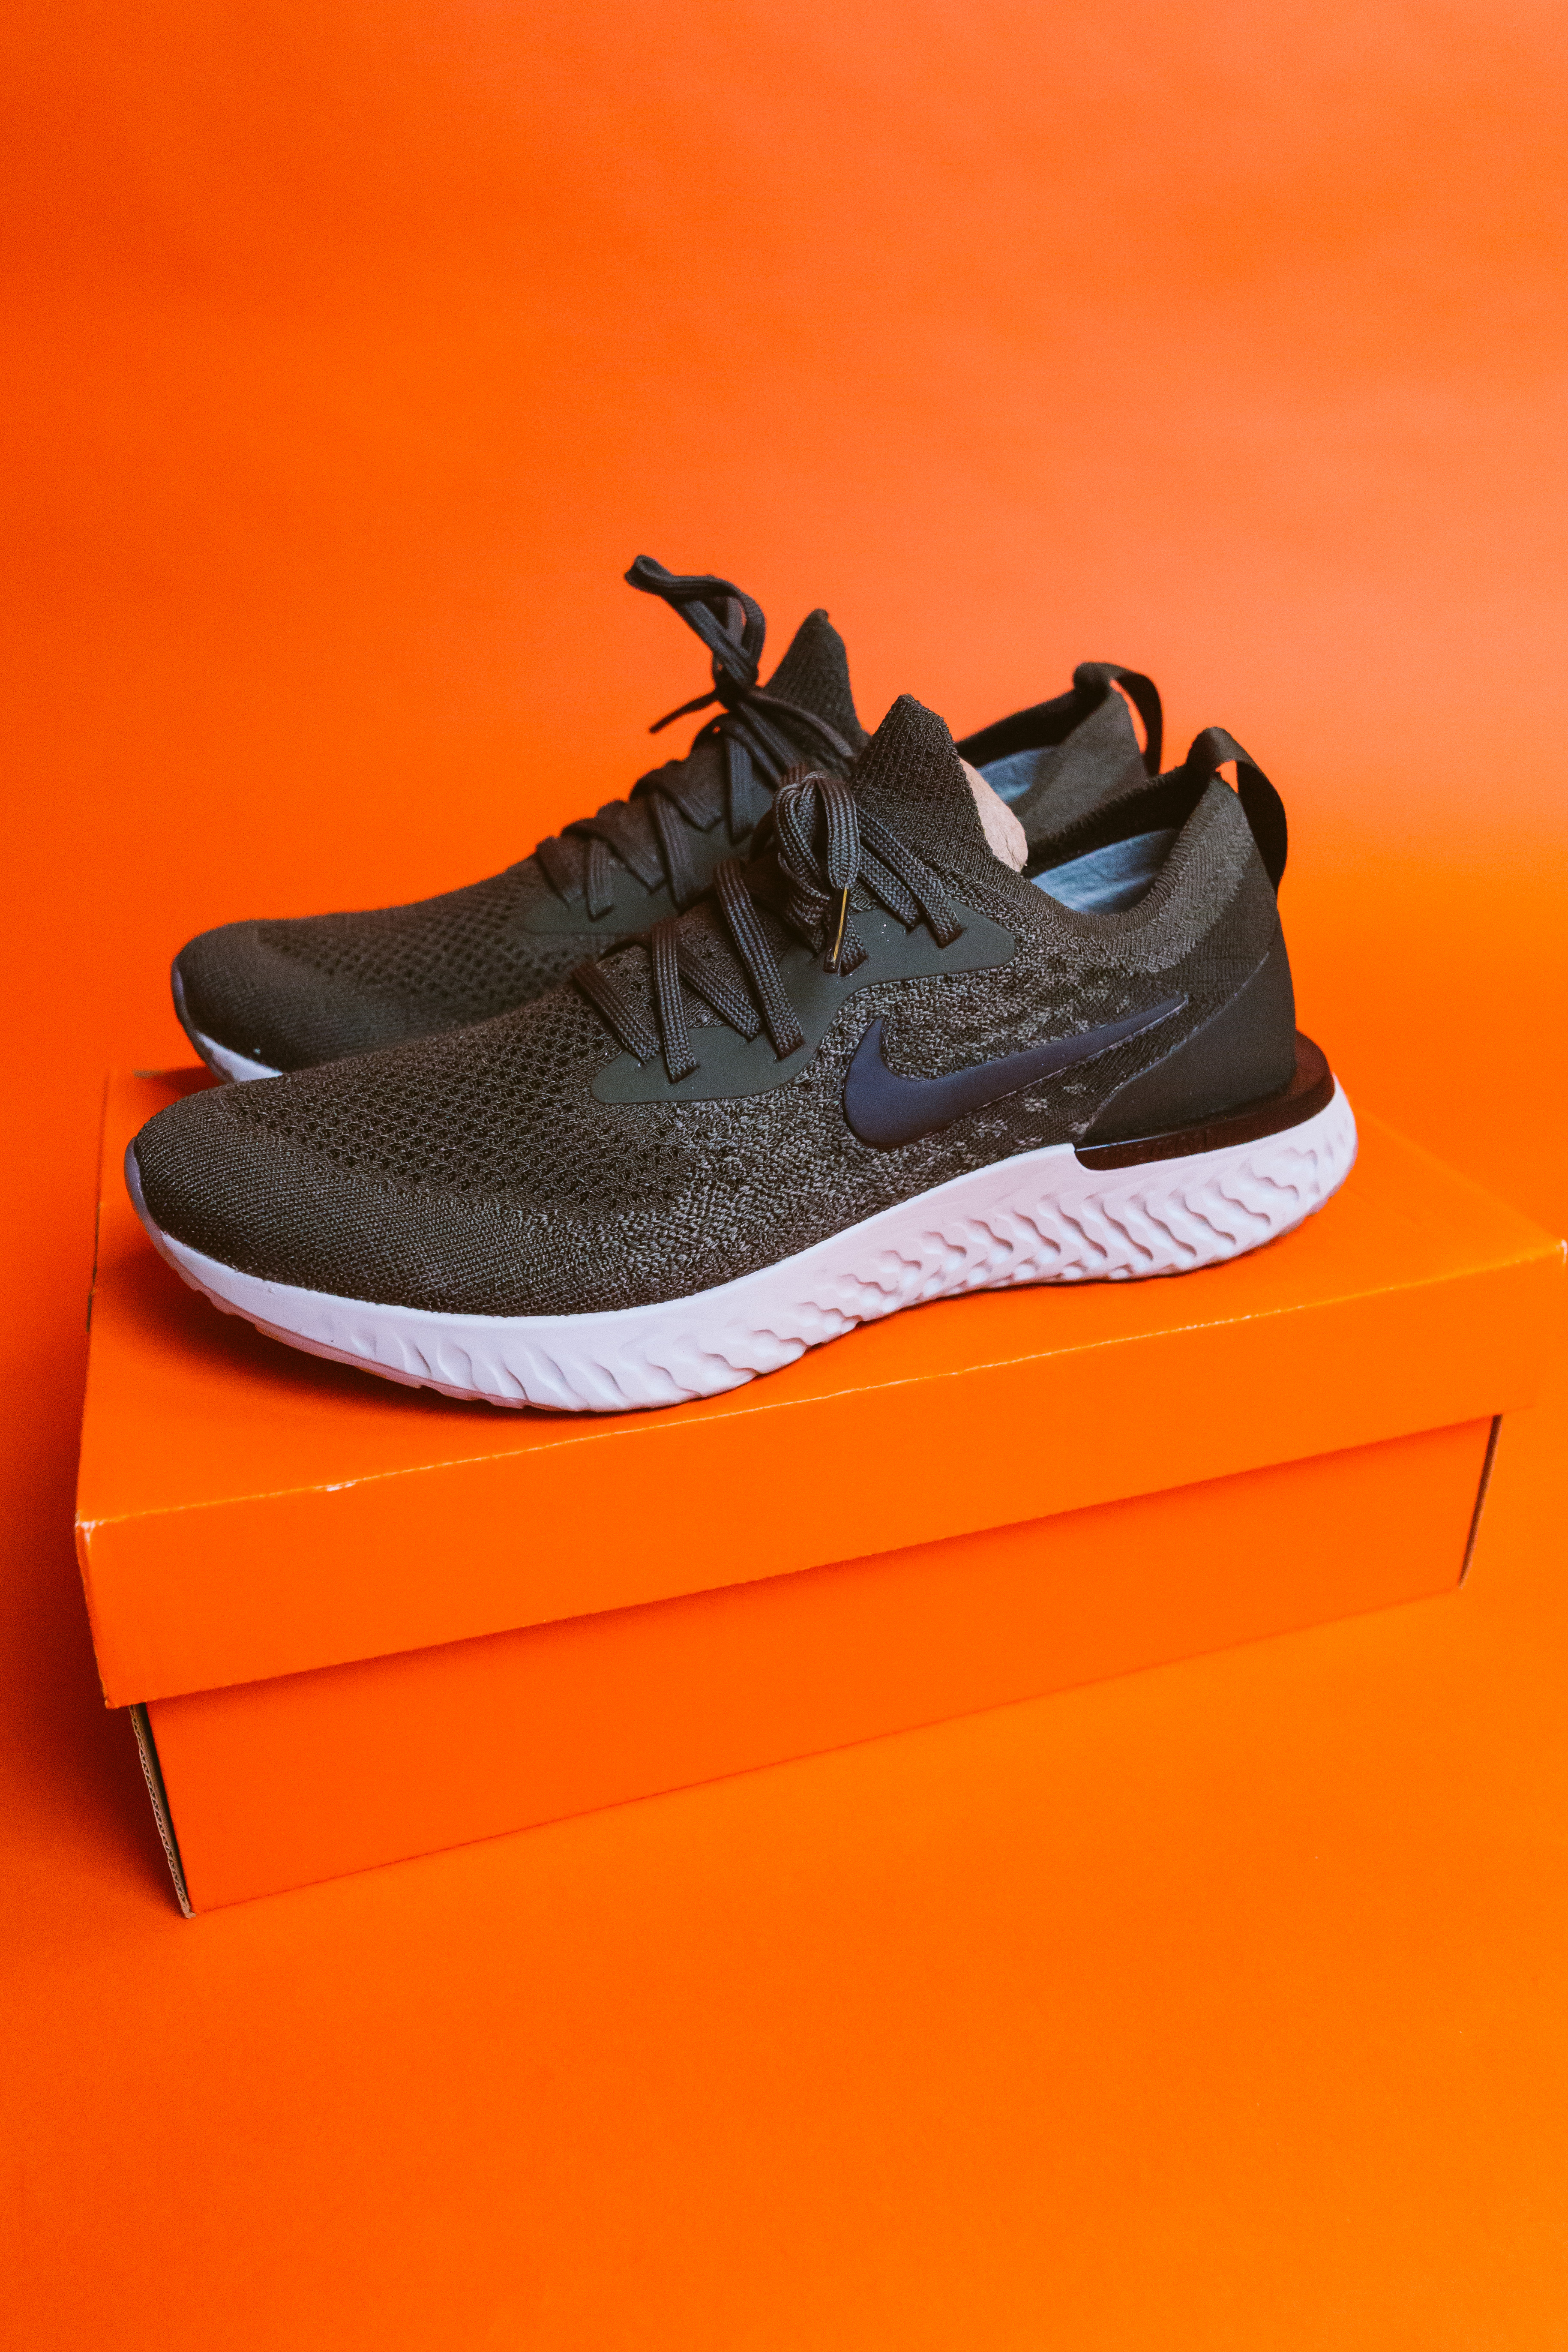 16e27184f78c Nike Nike Epic React Flyknit Army Green Cargo Khaki AQ0067-300 Size 8.5 -  Low-Top Sneakers for Sale - Grailed